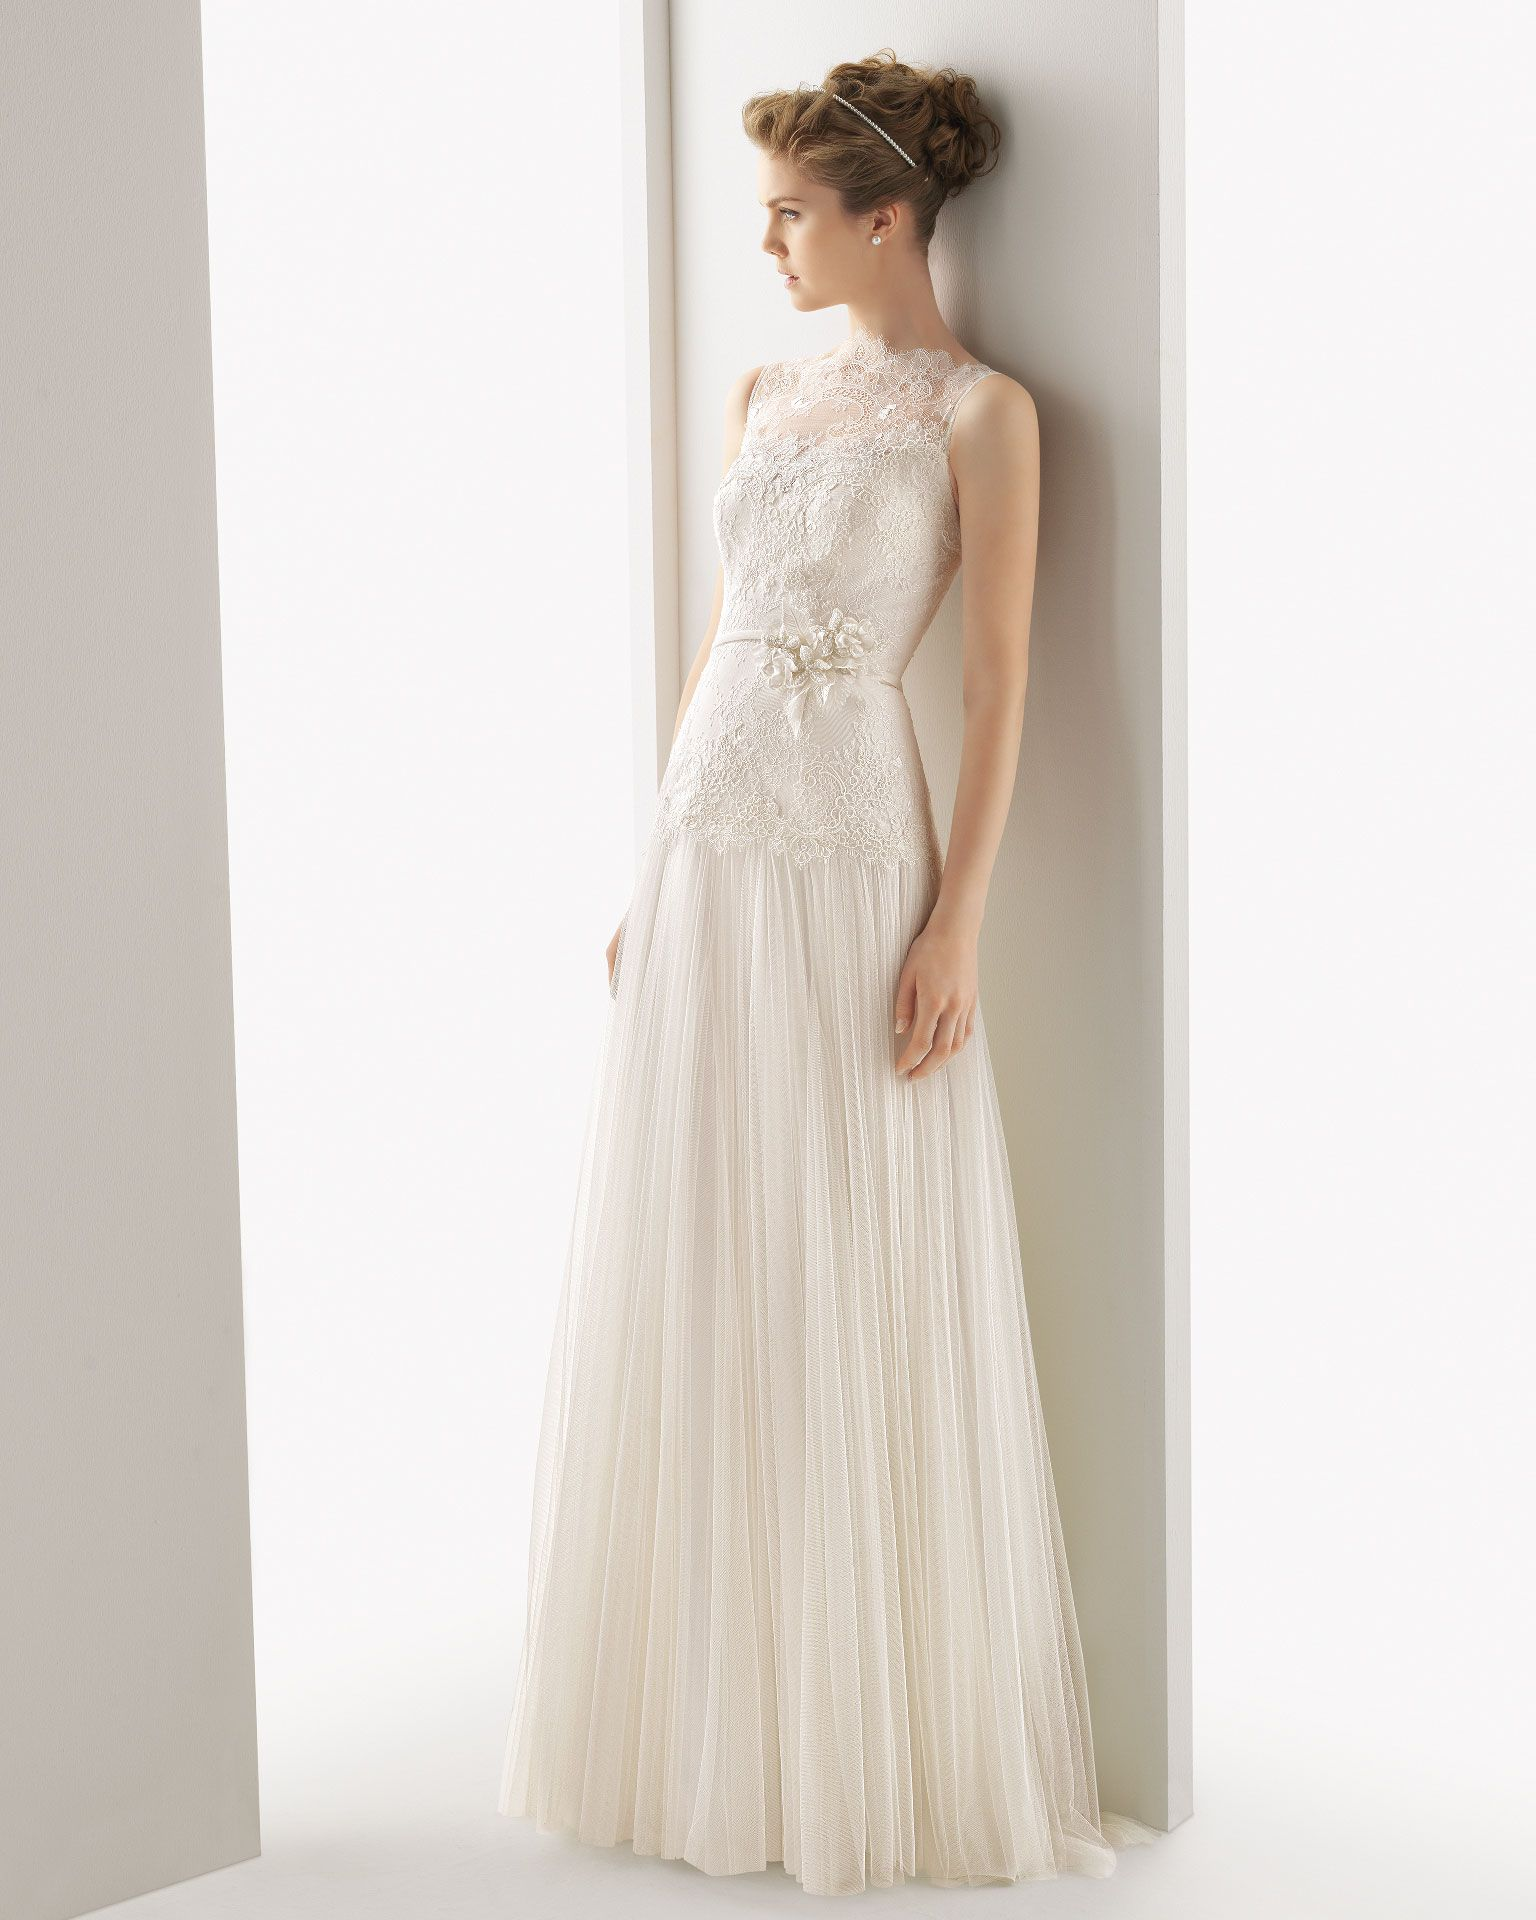 Elegant Lace Tulle Wedding Dresses Simple Design 3 4 Lace: Silk Tulle And Lace Dress With A Flower Brooch In